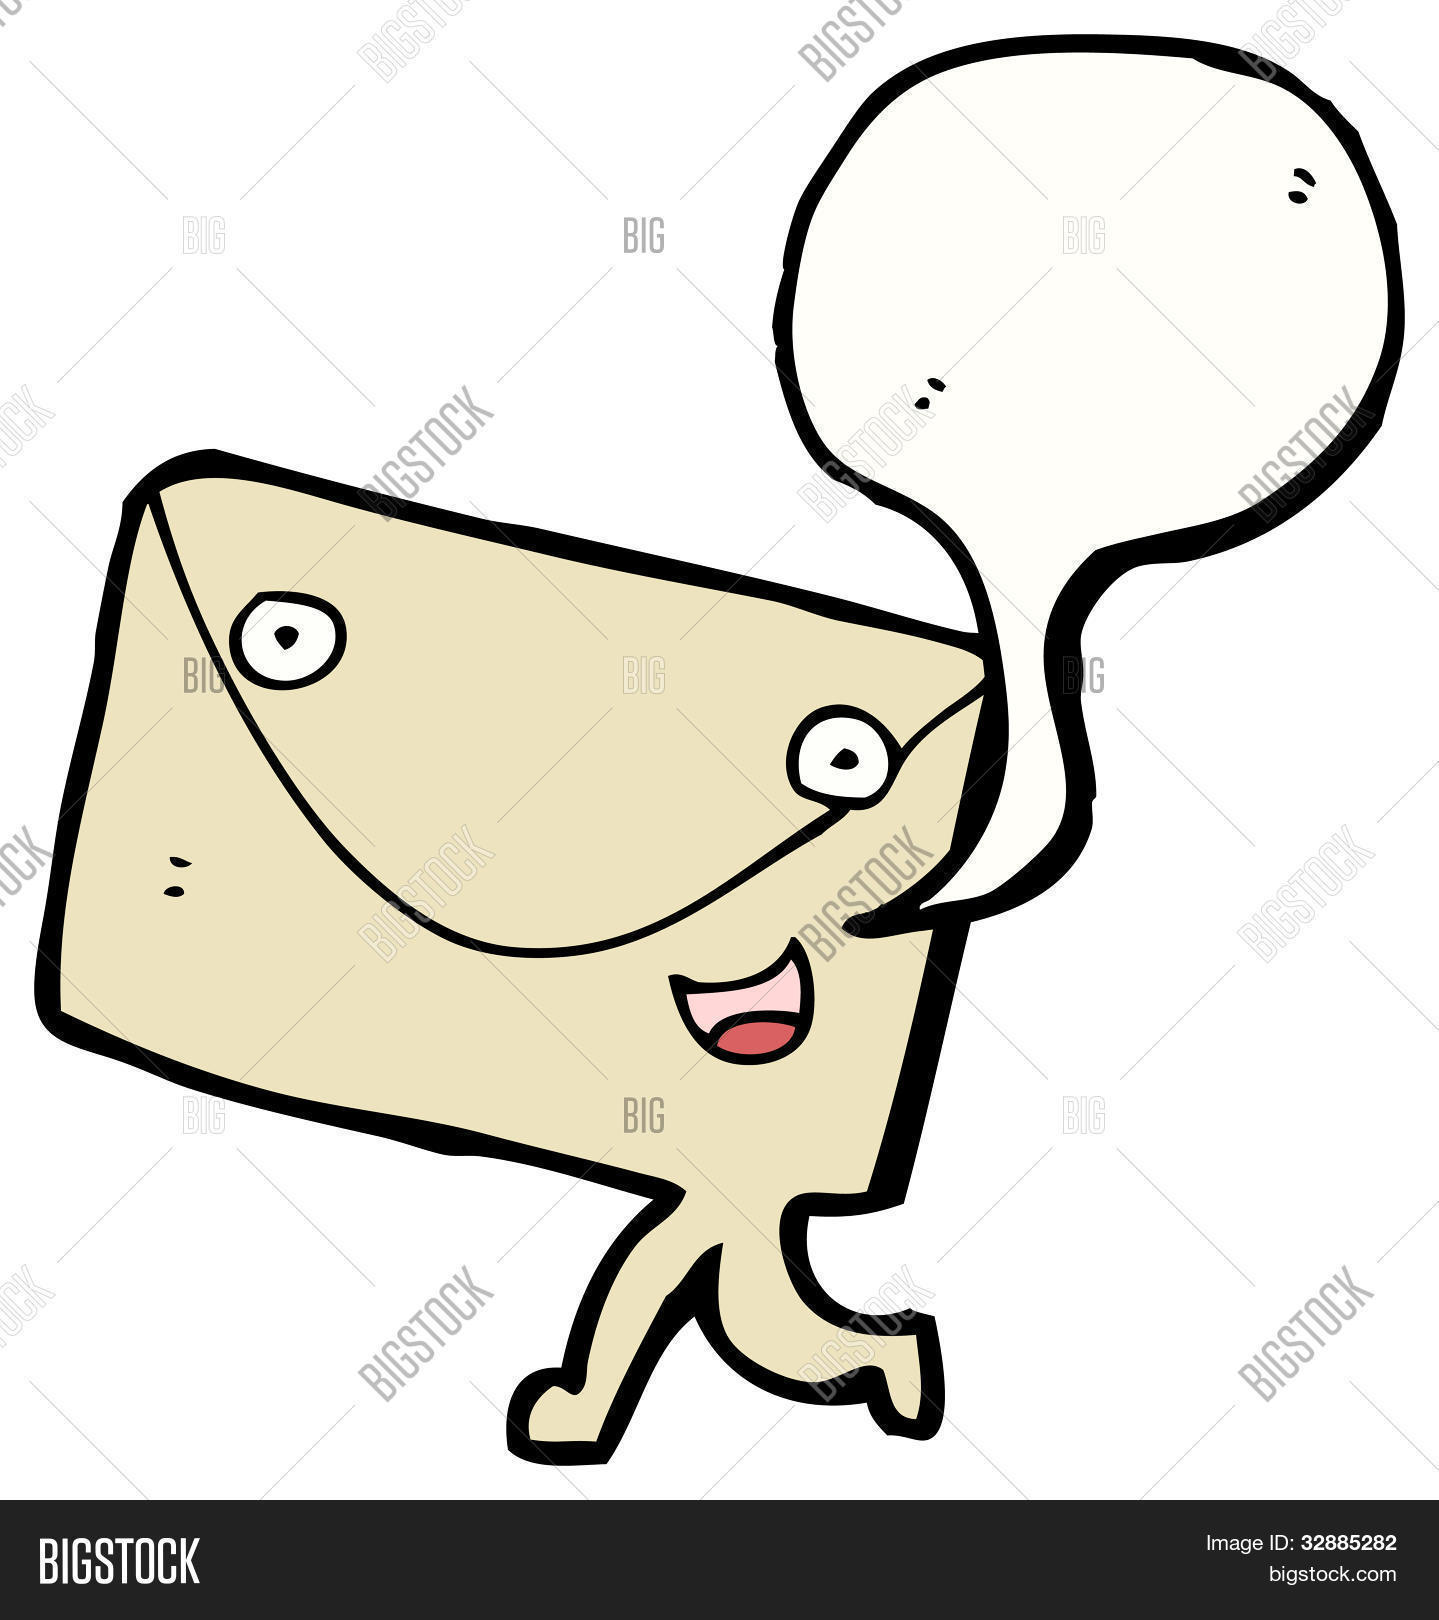 3 Letter Cartoon Characters : Cartoon letter envelope character stock photo